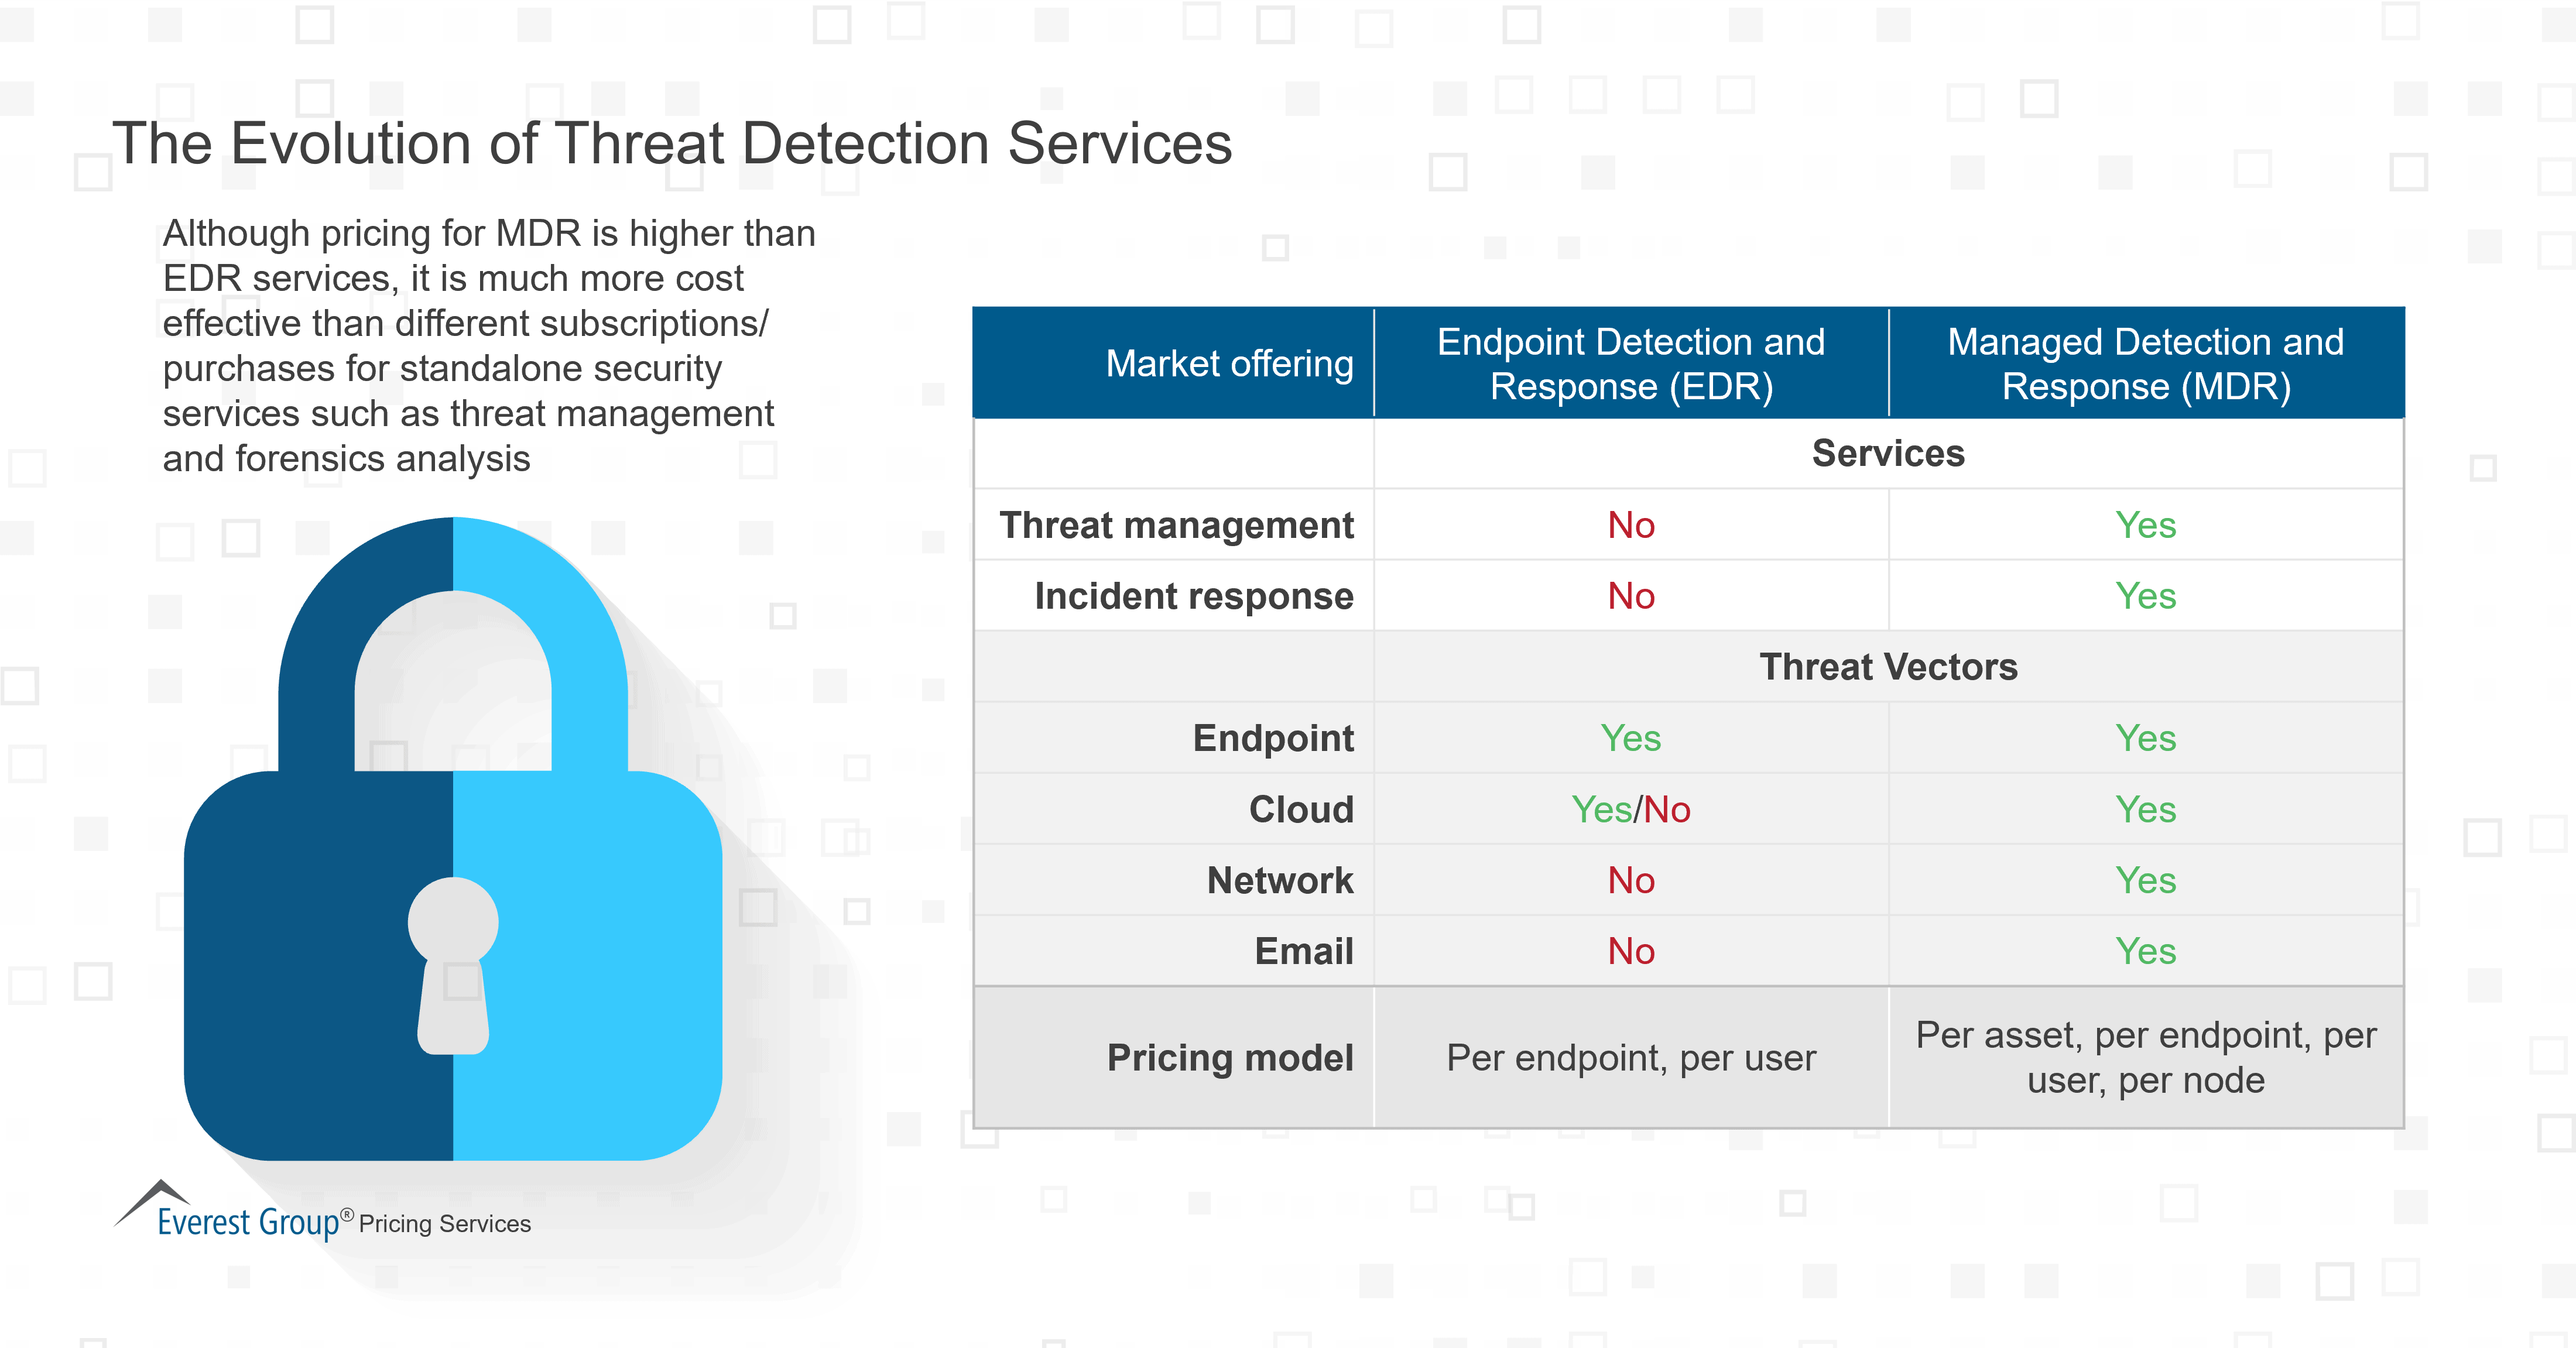 The Evolution of Threat Detection Services